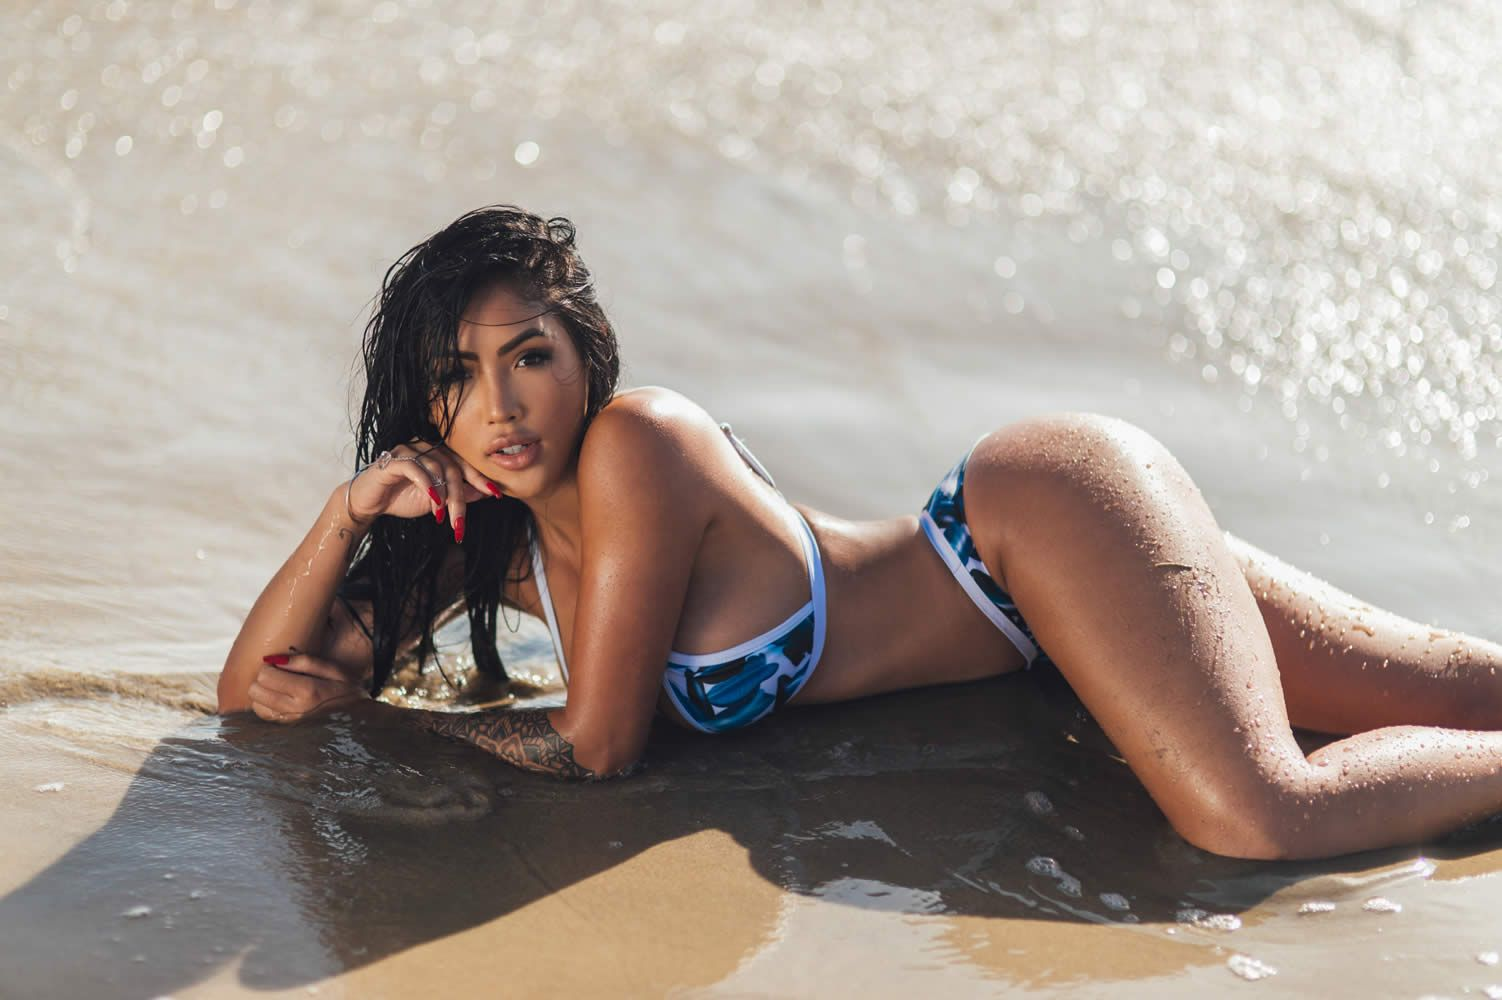 Celebrites Marie Madore nudes (23 images), Ass